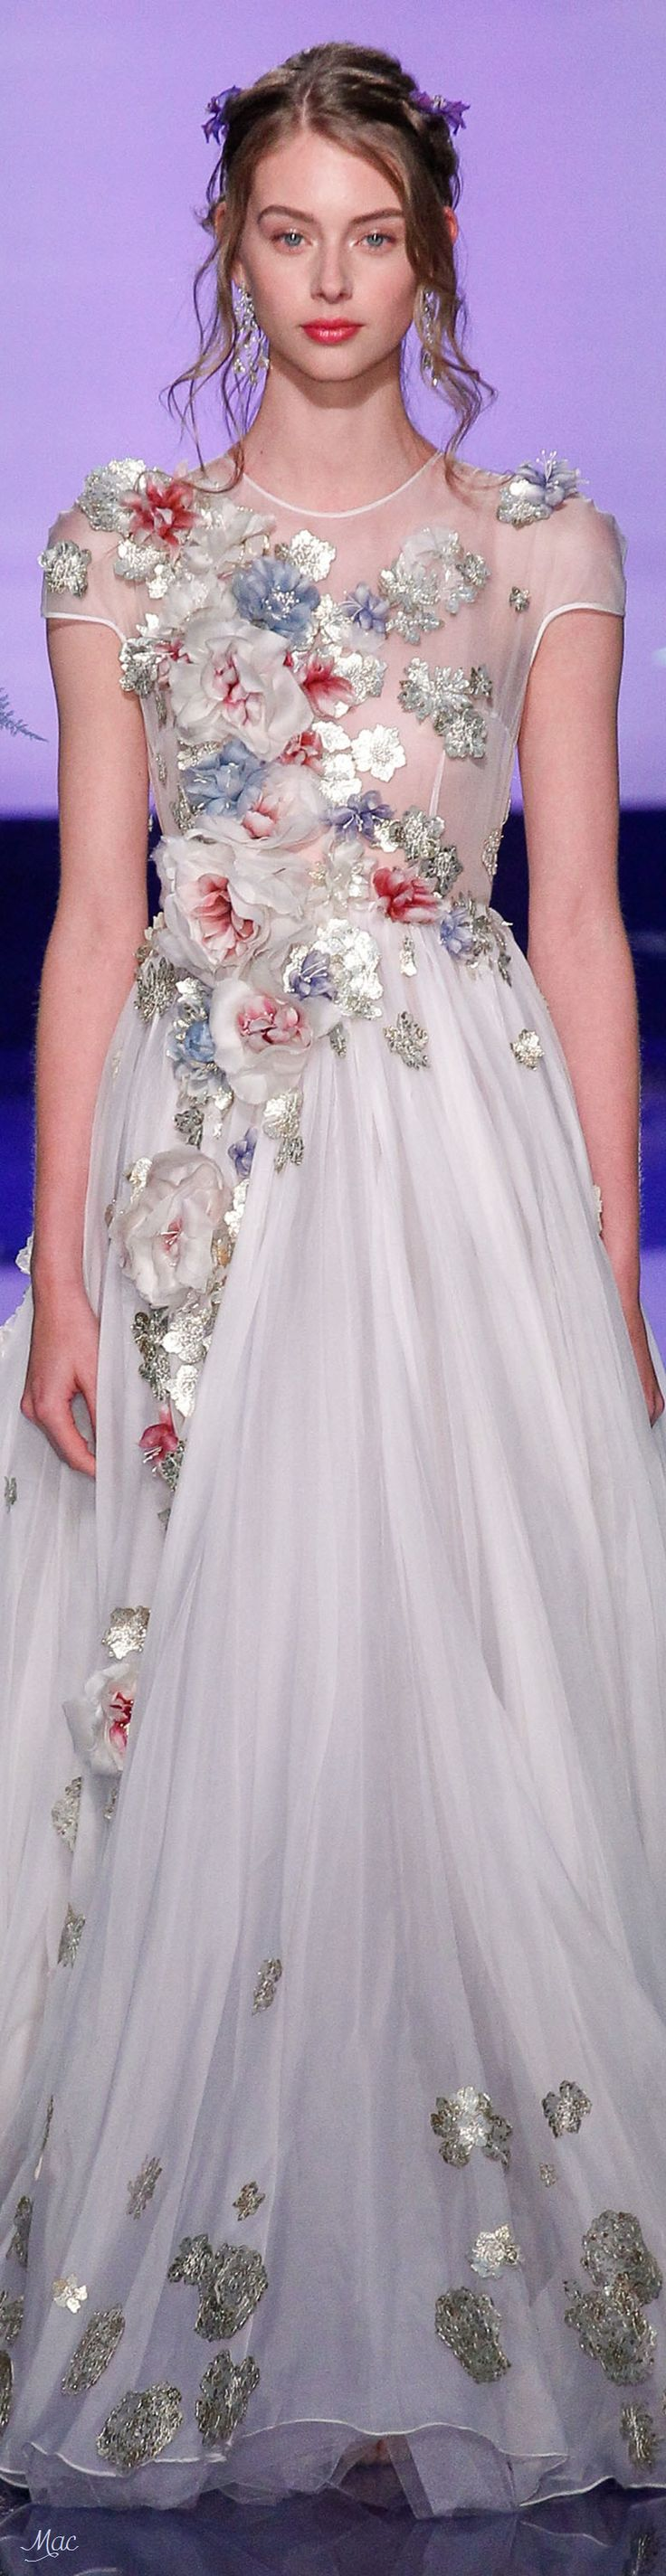 37647 best images about fairytales on pinterest for Narciso rodriguez wedding dress collection